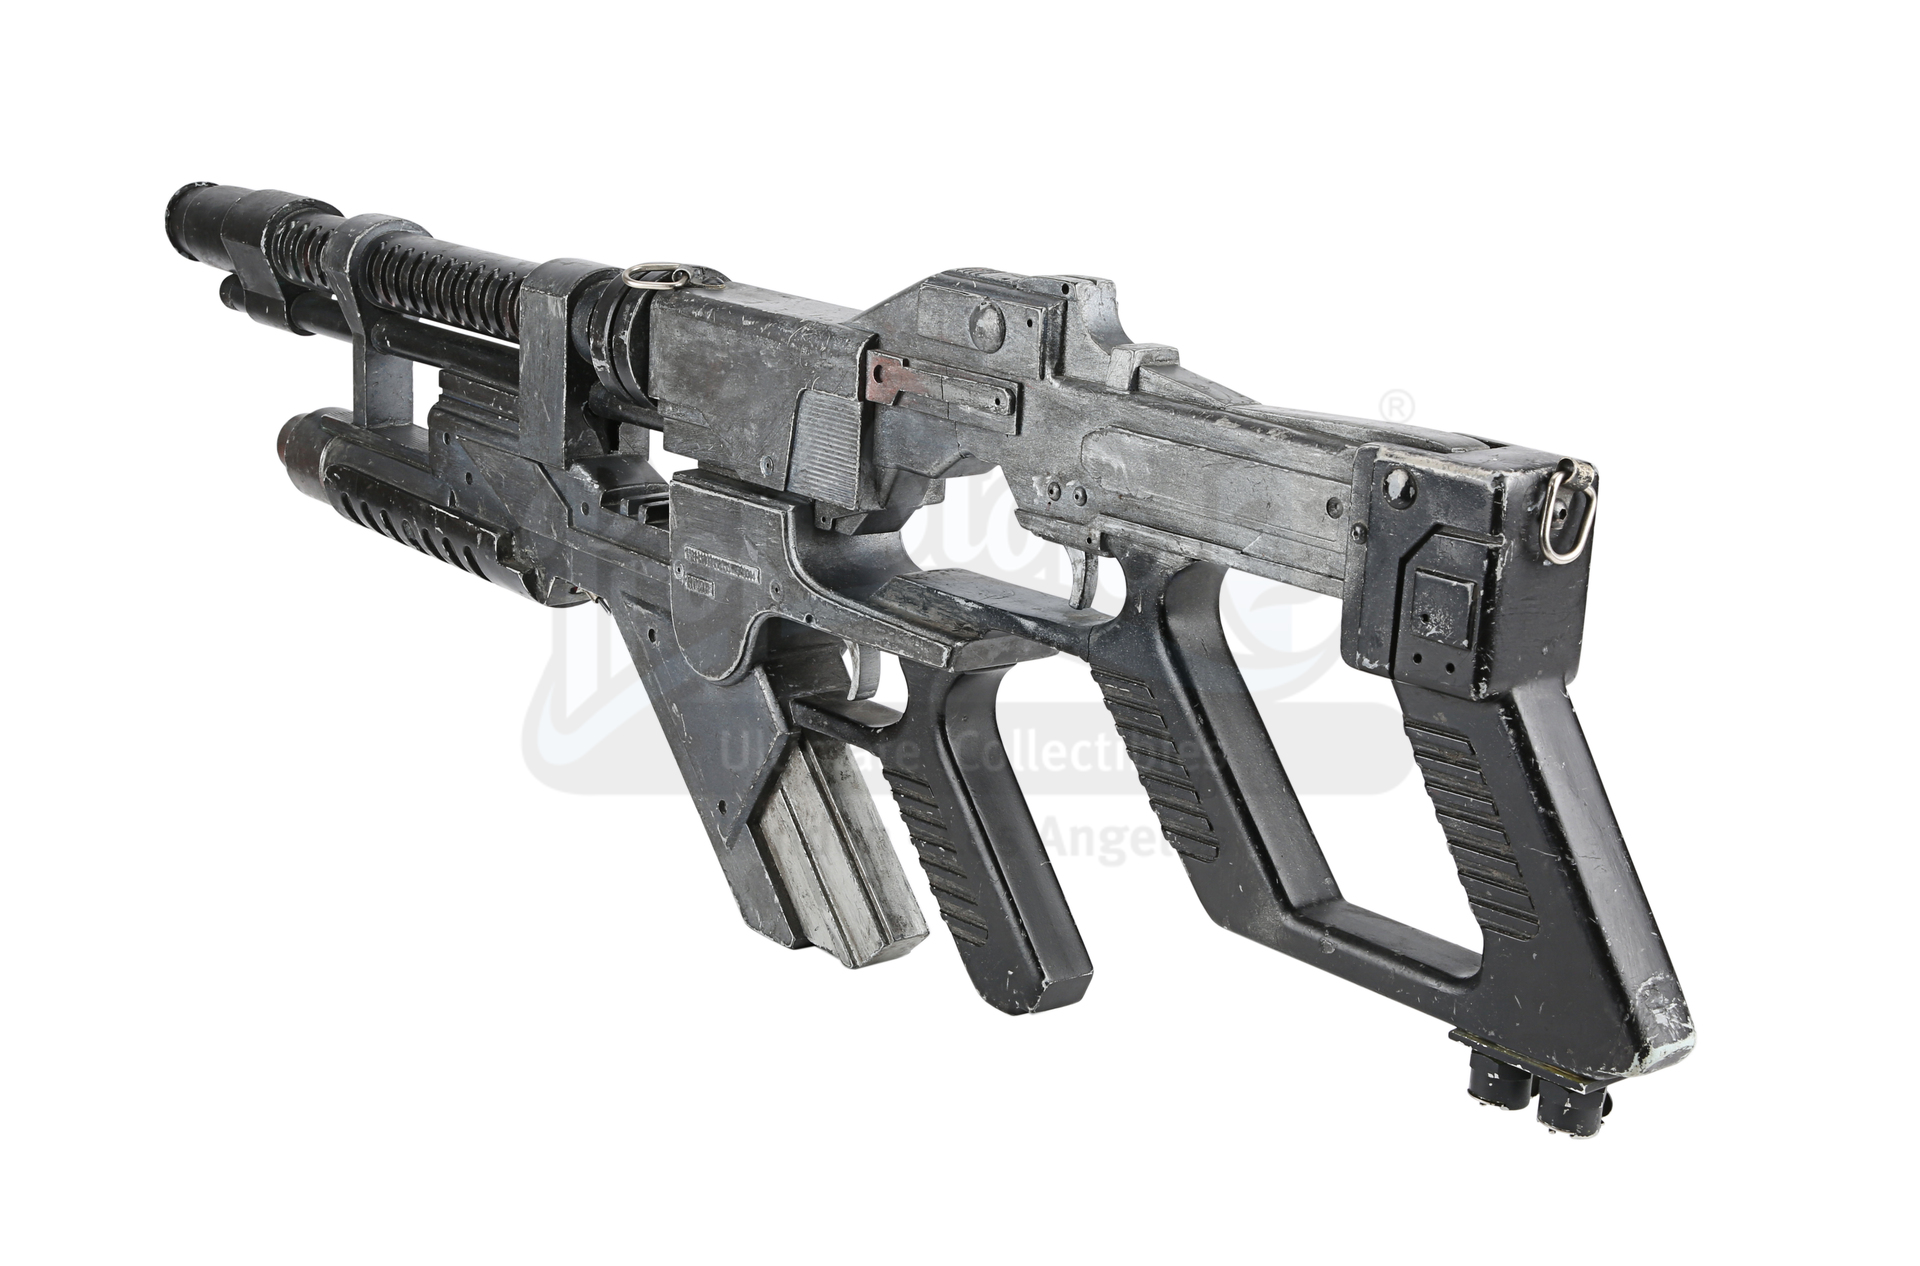 ALIEN RESURRECTION (1997) - Light-Up AR-2 Rifle - Image 6 of 19